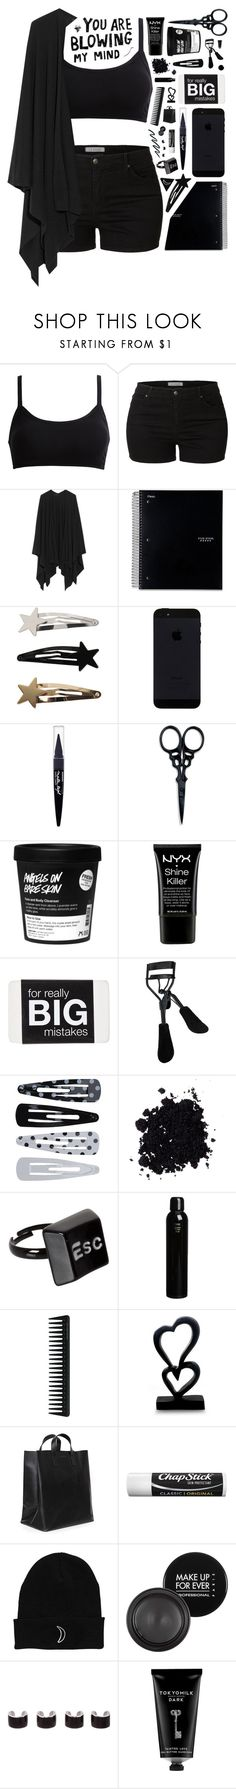 """1092"" by glitterals ❤ liked on Polyvore featuring LE3NO, The Row, Maybelline, The BrowGal, NYX, Eyeko, Forever 21, ASOS, Oribe and GHD"